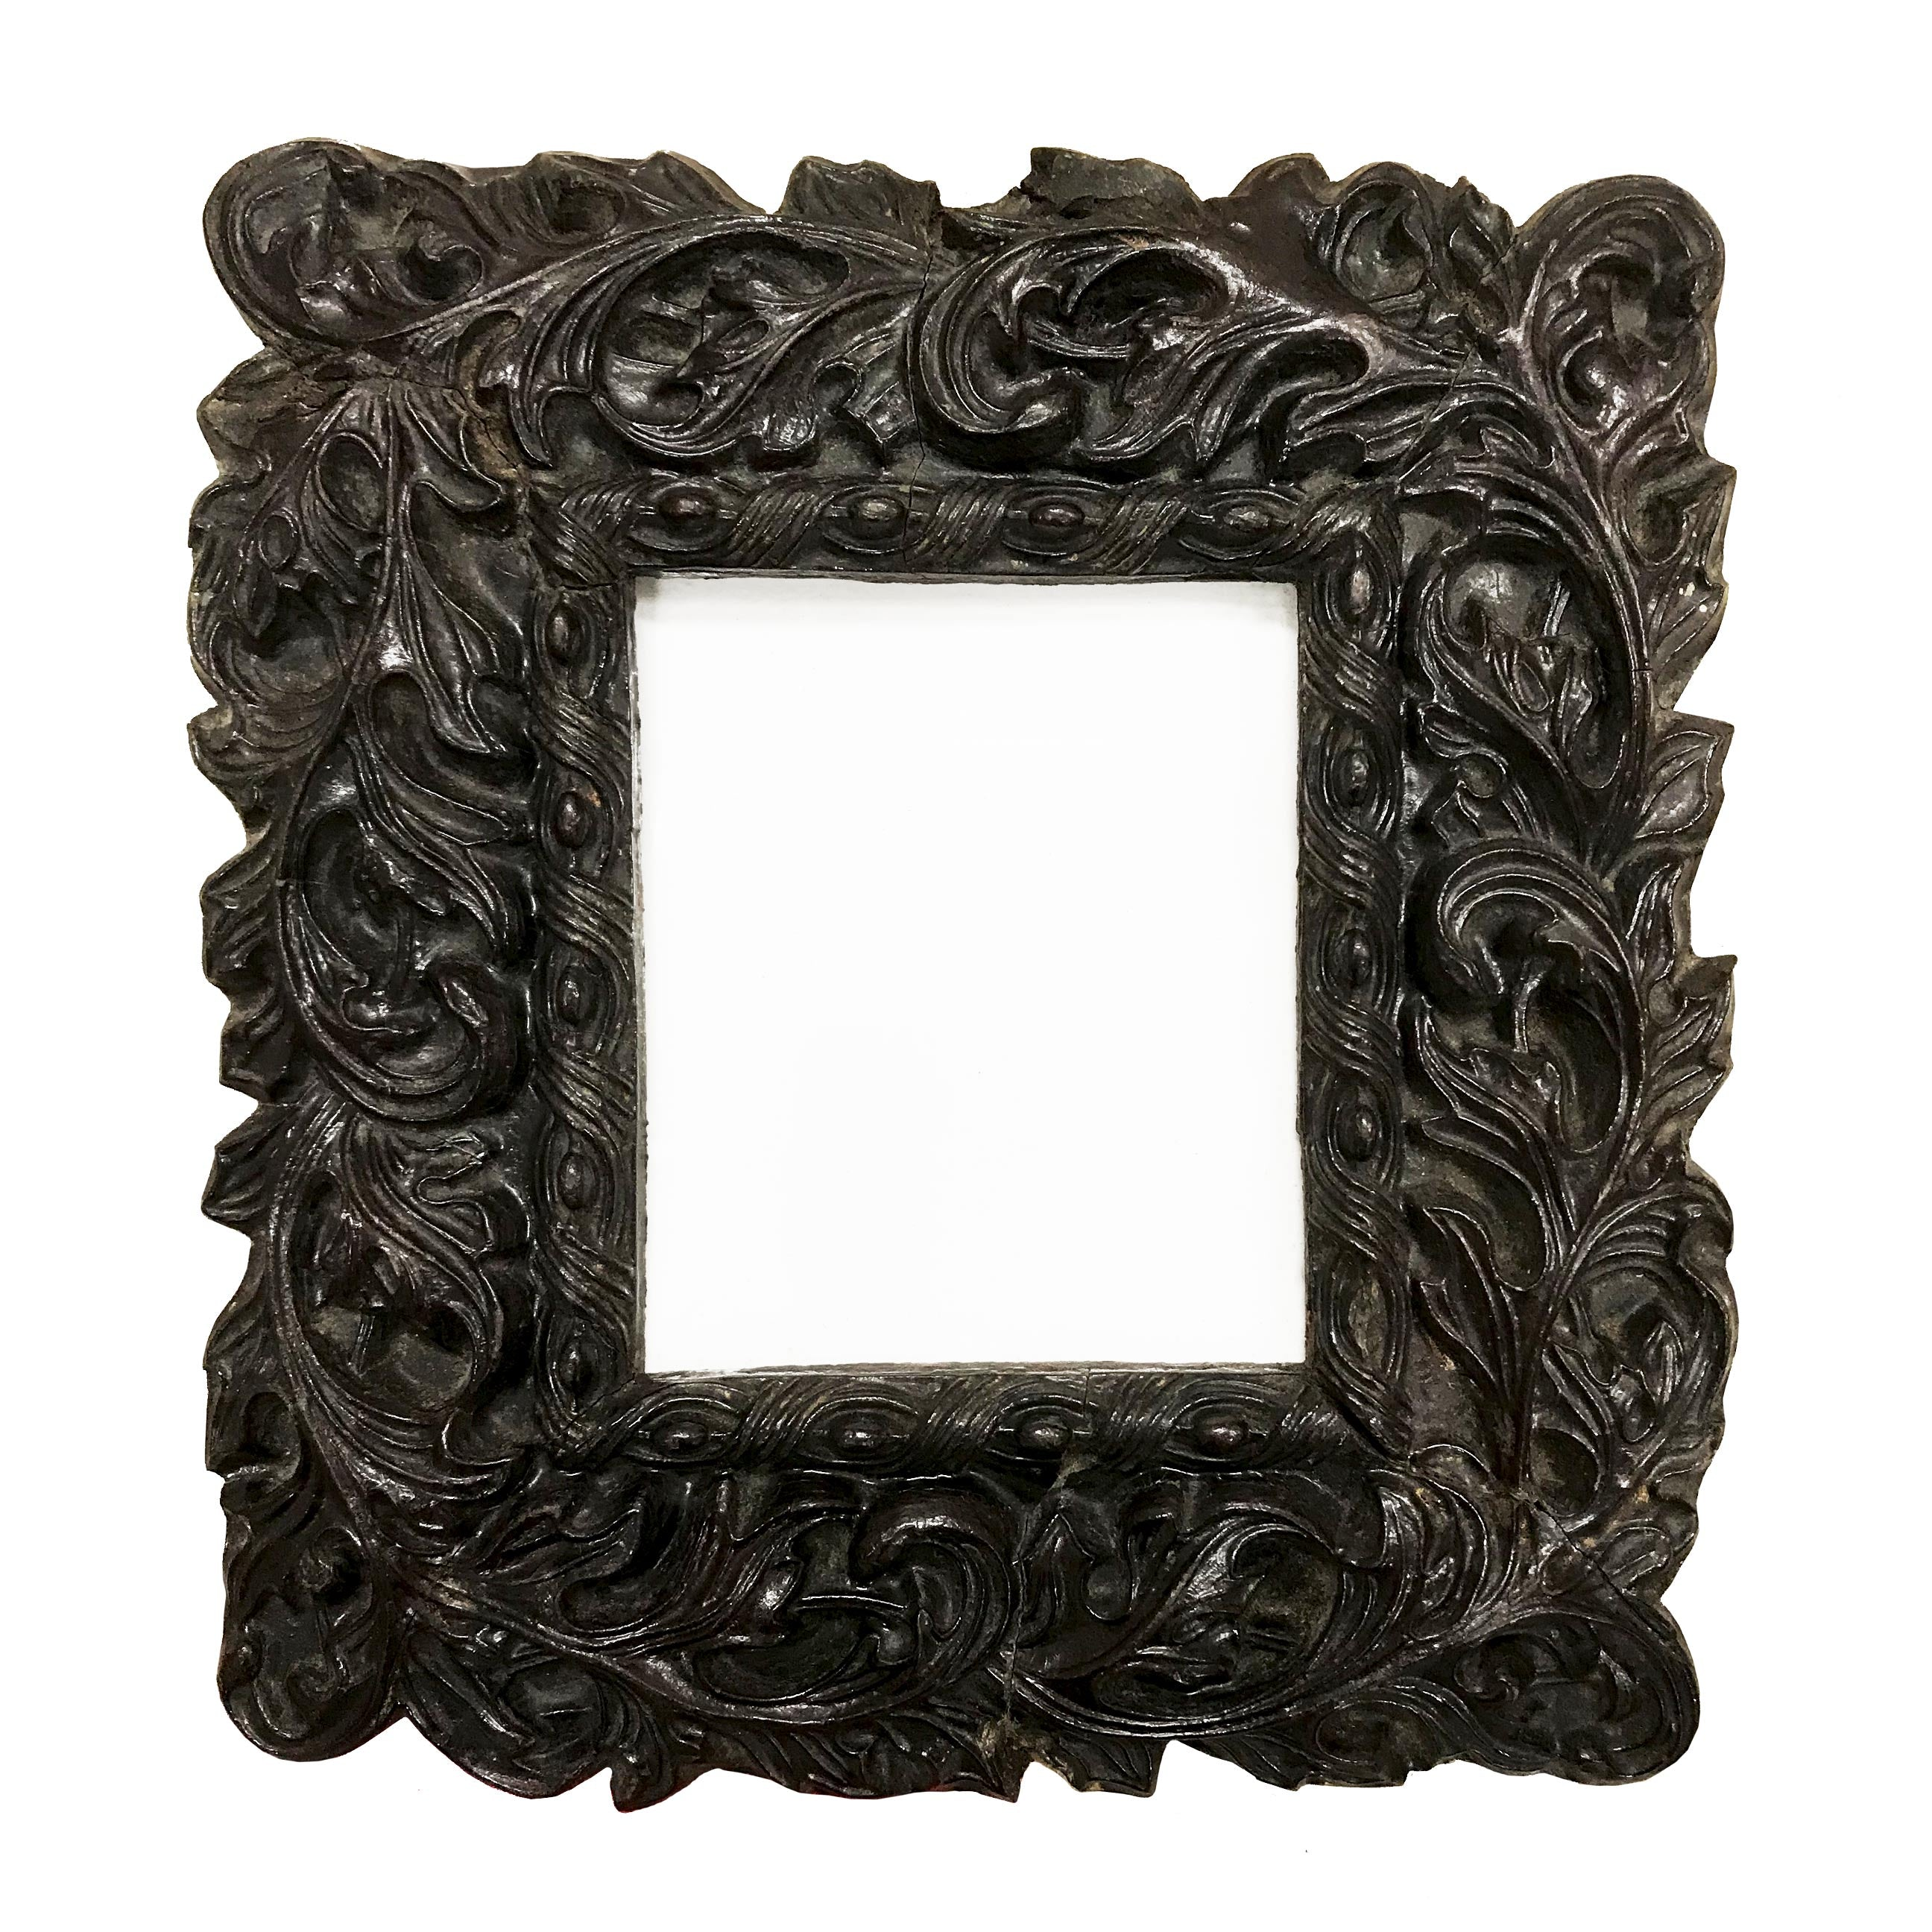 Antique Paper Mache Frame. A 'wood like' paper mache frame, which uses a beautiful embossed style decoration of entwining leaves - SHOP NOW - www.intovintage.co.uk